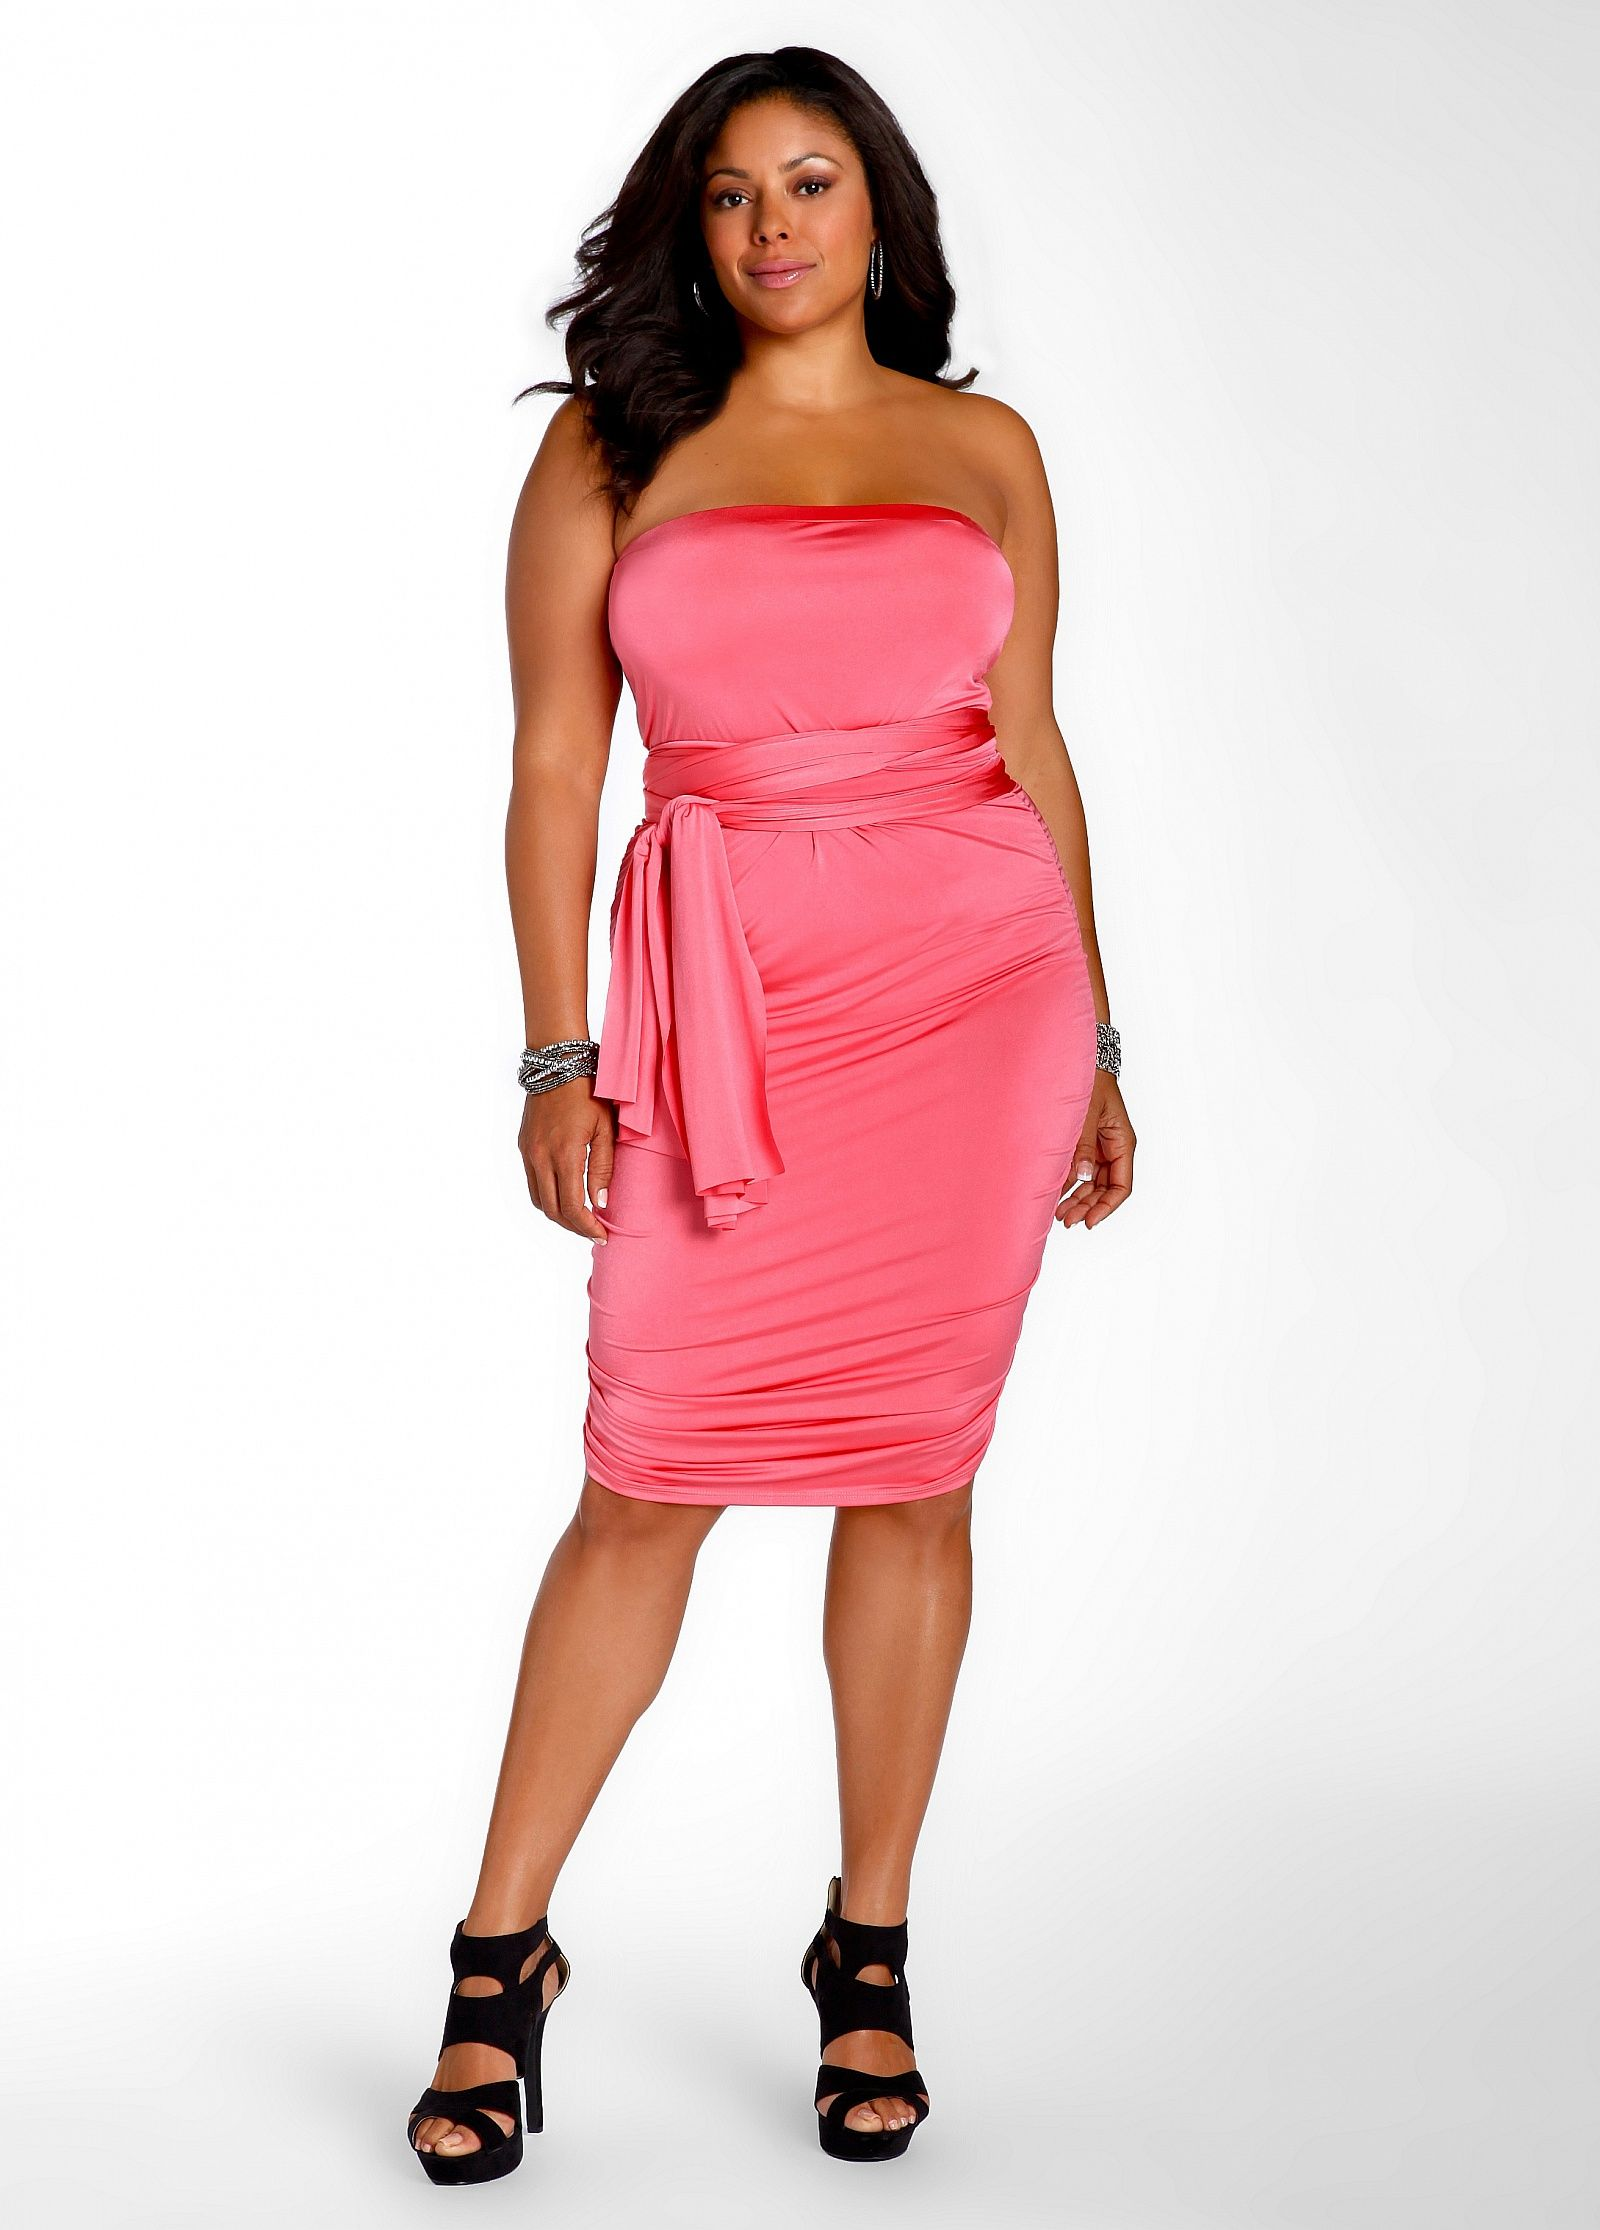 e99ee1e67c4 Ashley Stewart  Web Exclusive 10 Way Shirred Dress - genius!